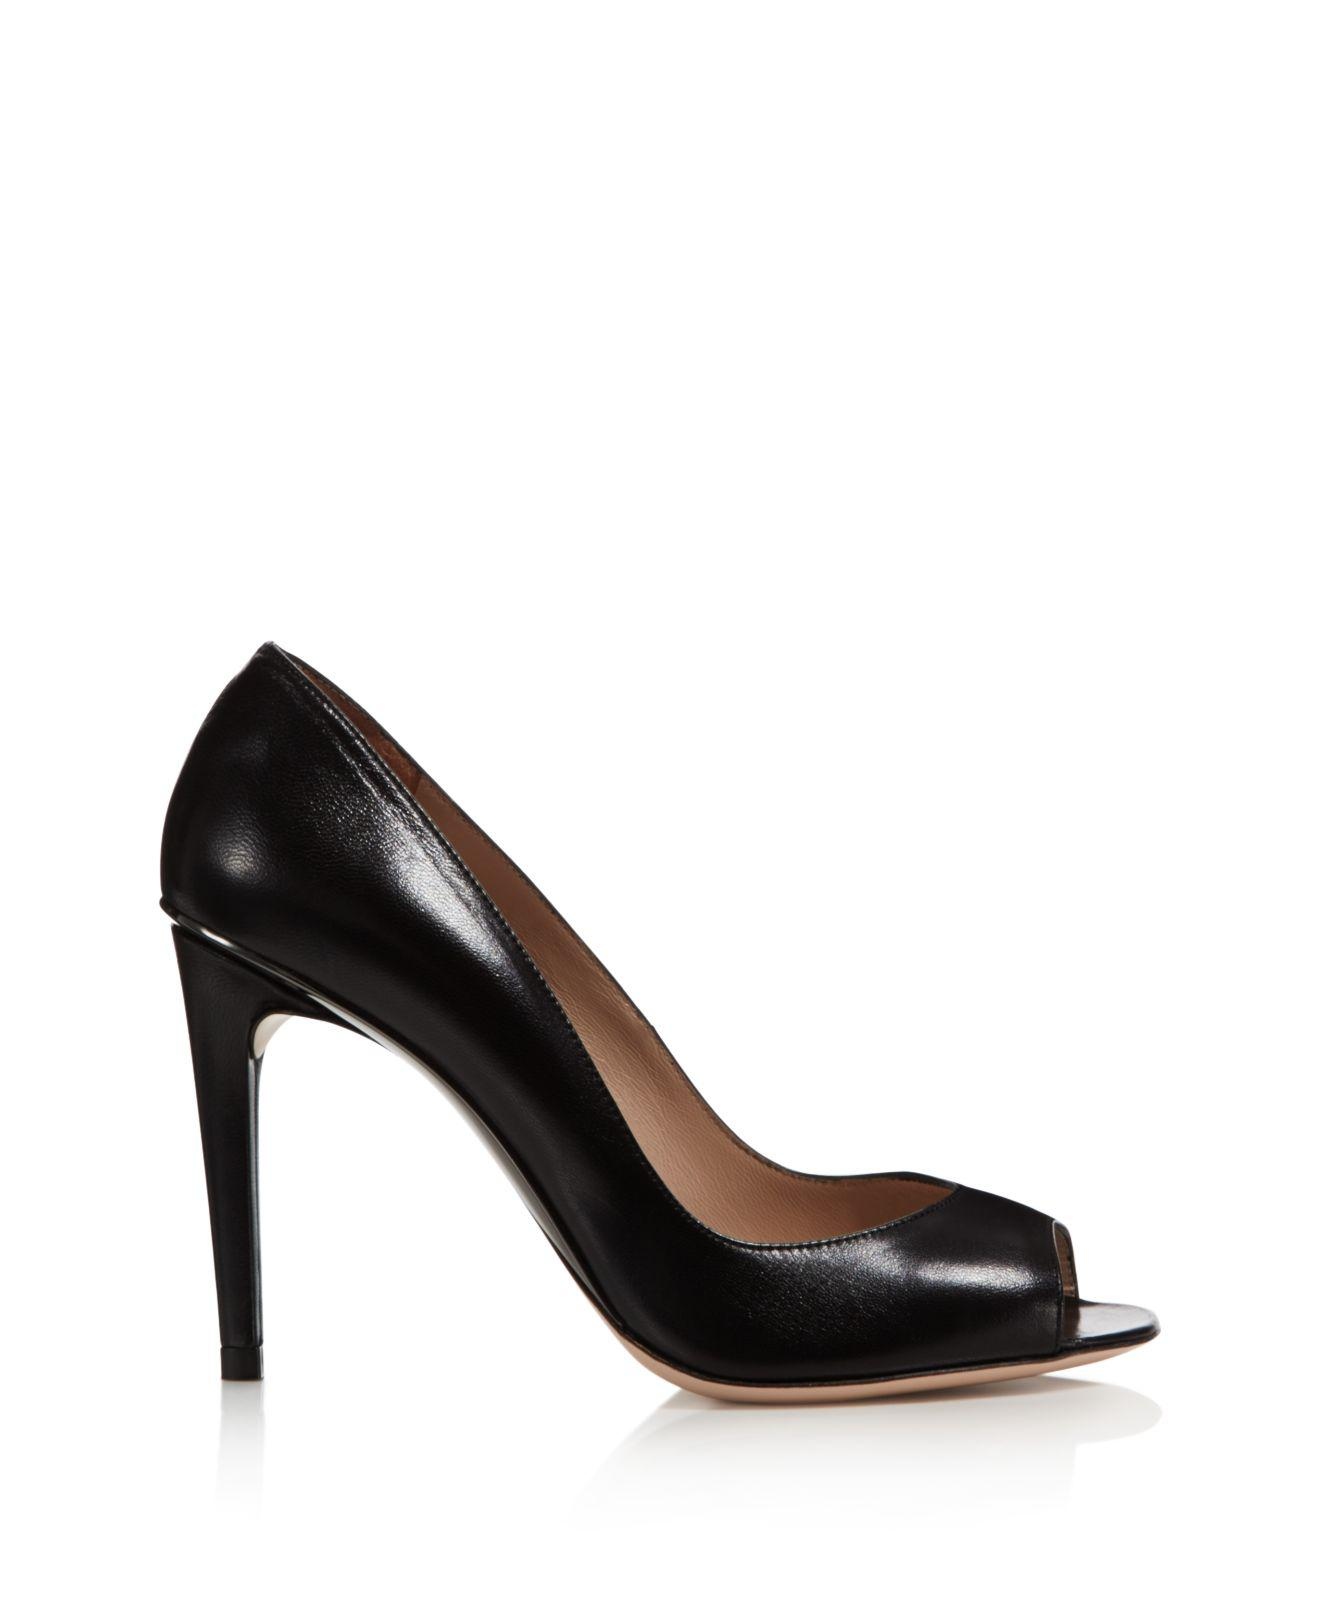 Stuart Weitzman Lady Pointed-Toe Pumps discount pay with paypal get to buy online clearance pay with paypal 2THghNZf